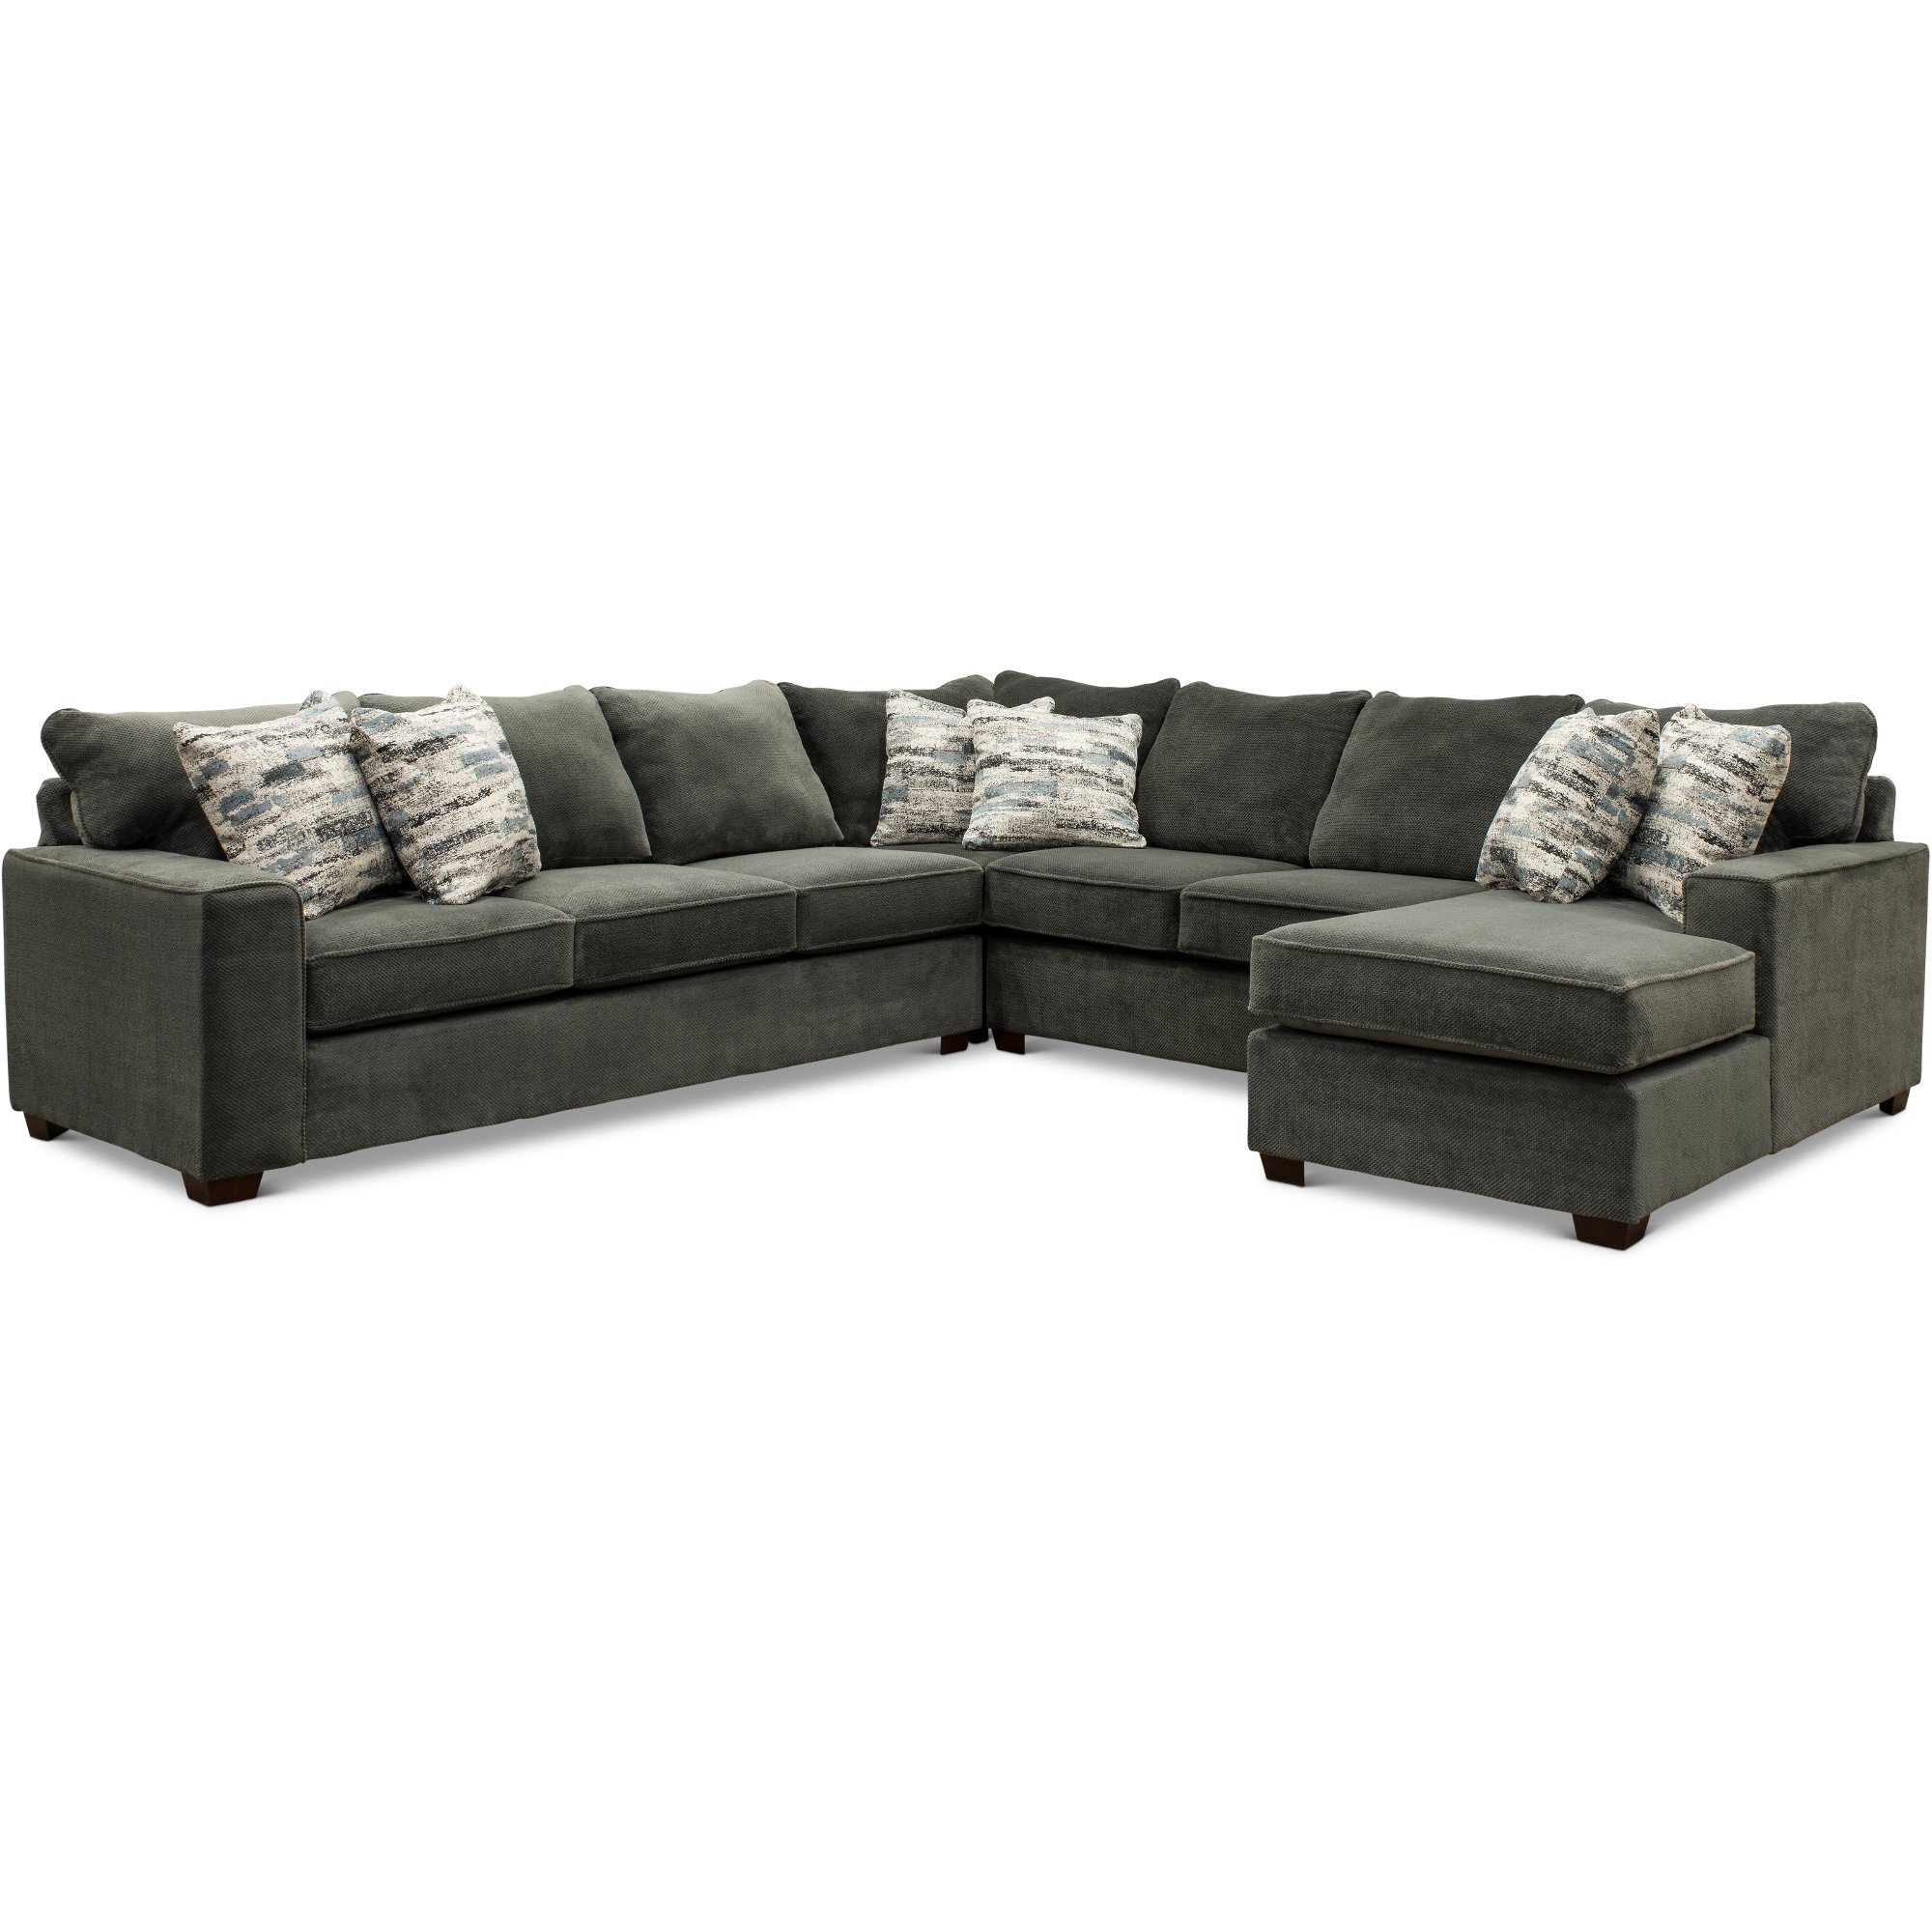 Dark Gray 4 Piece Sectional Sofa with LAF Sofa - Autumn